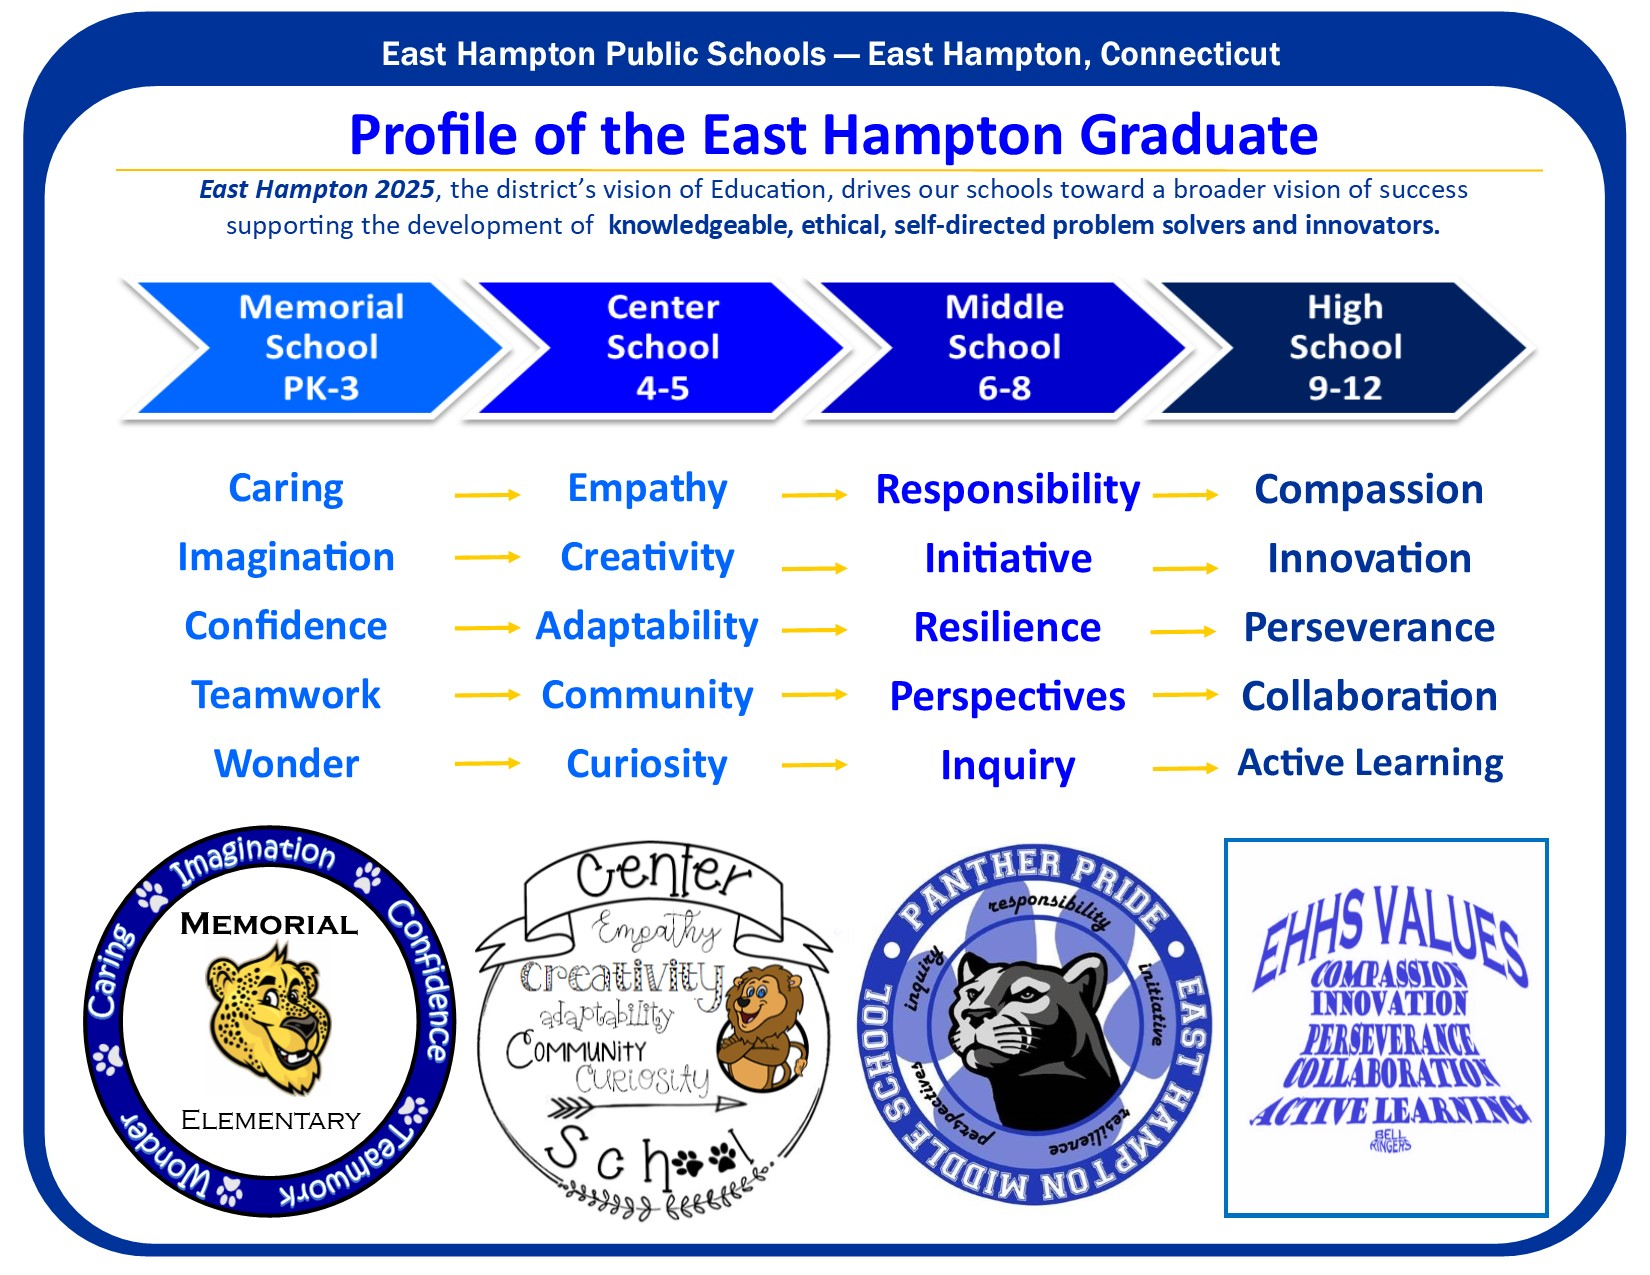 Graphic: Profile of the Graduate